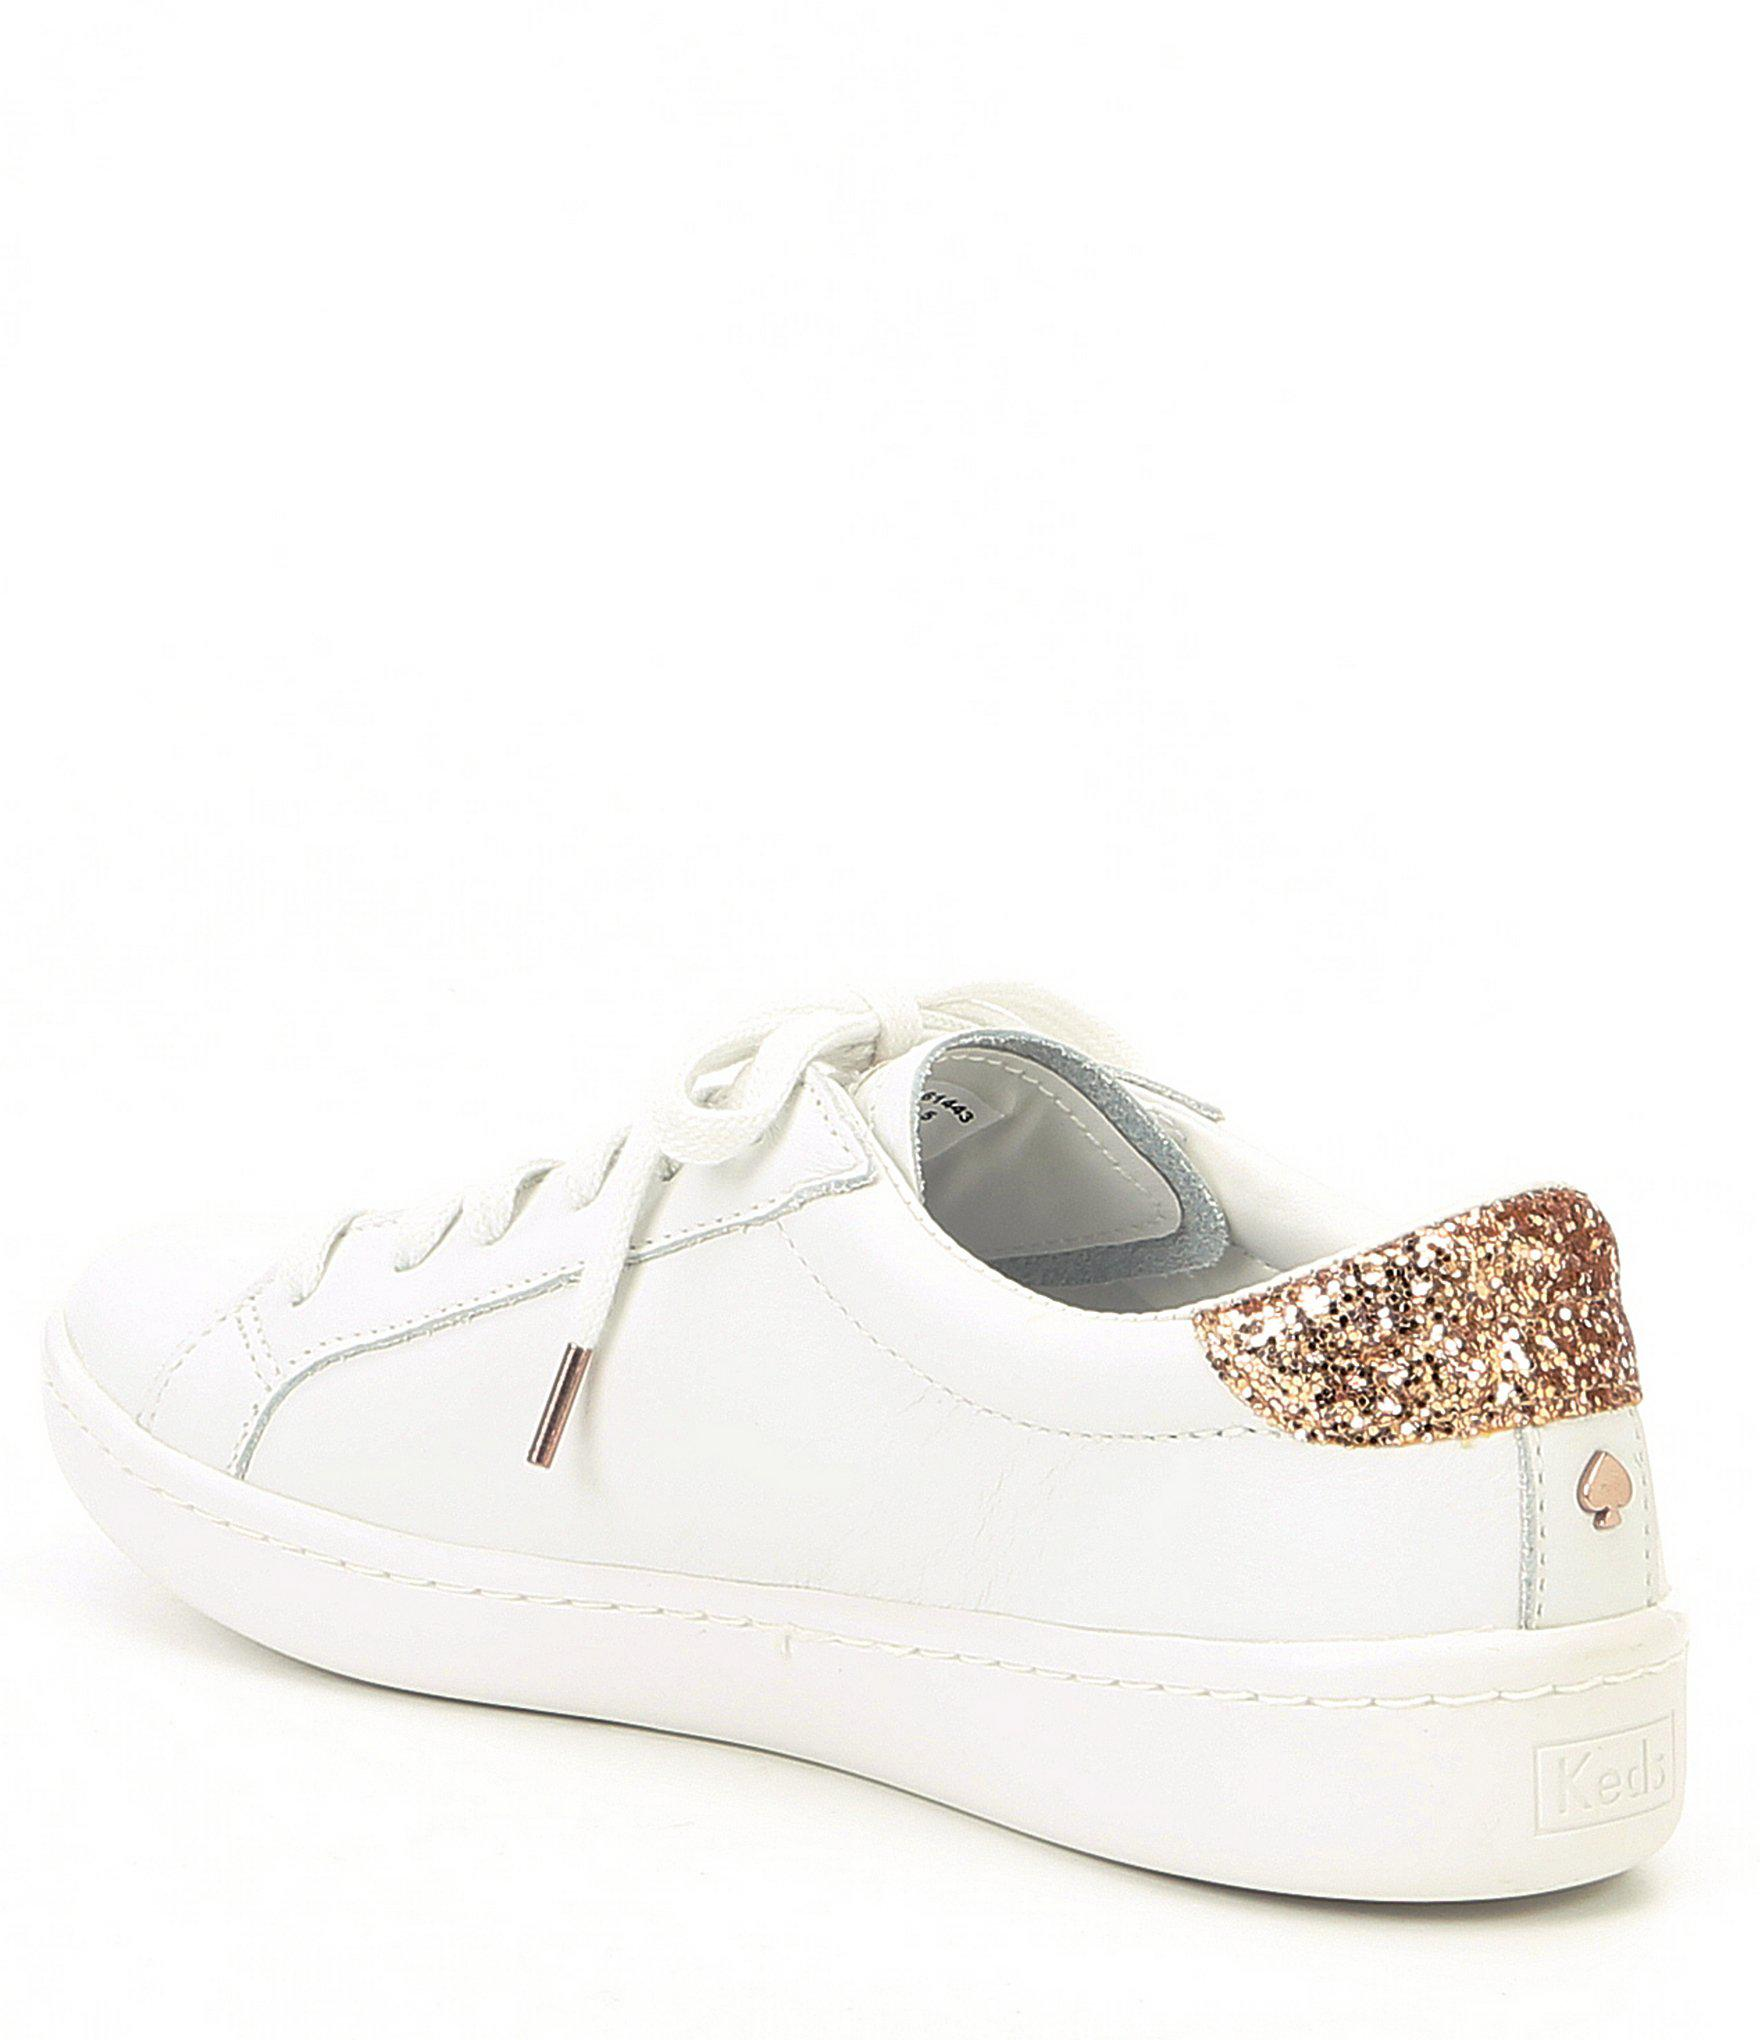 904bb4b4c5c5 Lyst - Kate Spade Keds X Ace Leather And Glitter Detail Sneakers in ...